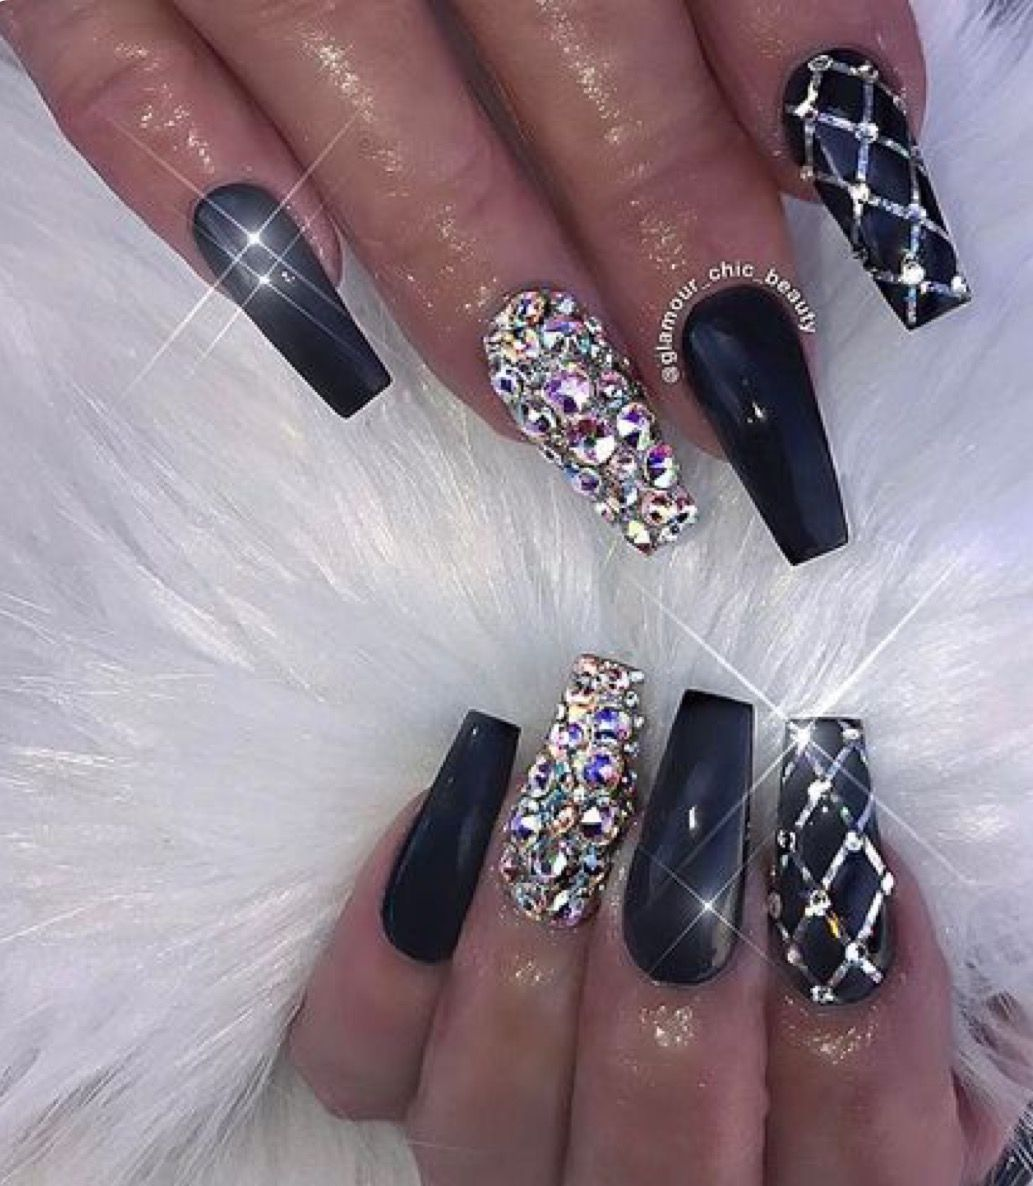 Pin by Amanda Wilson on Nails | Pinterest | Nail inspo, Sweet 16 ...